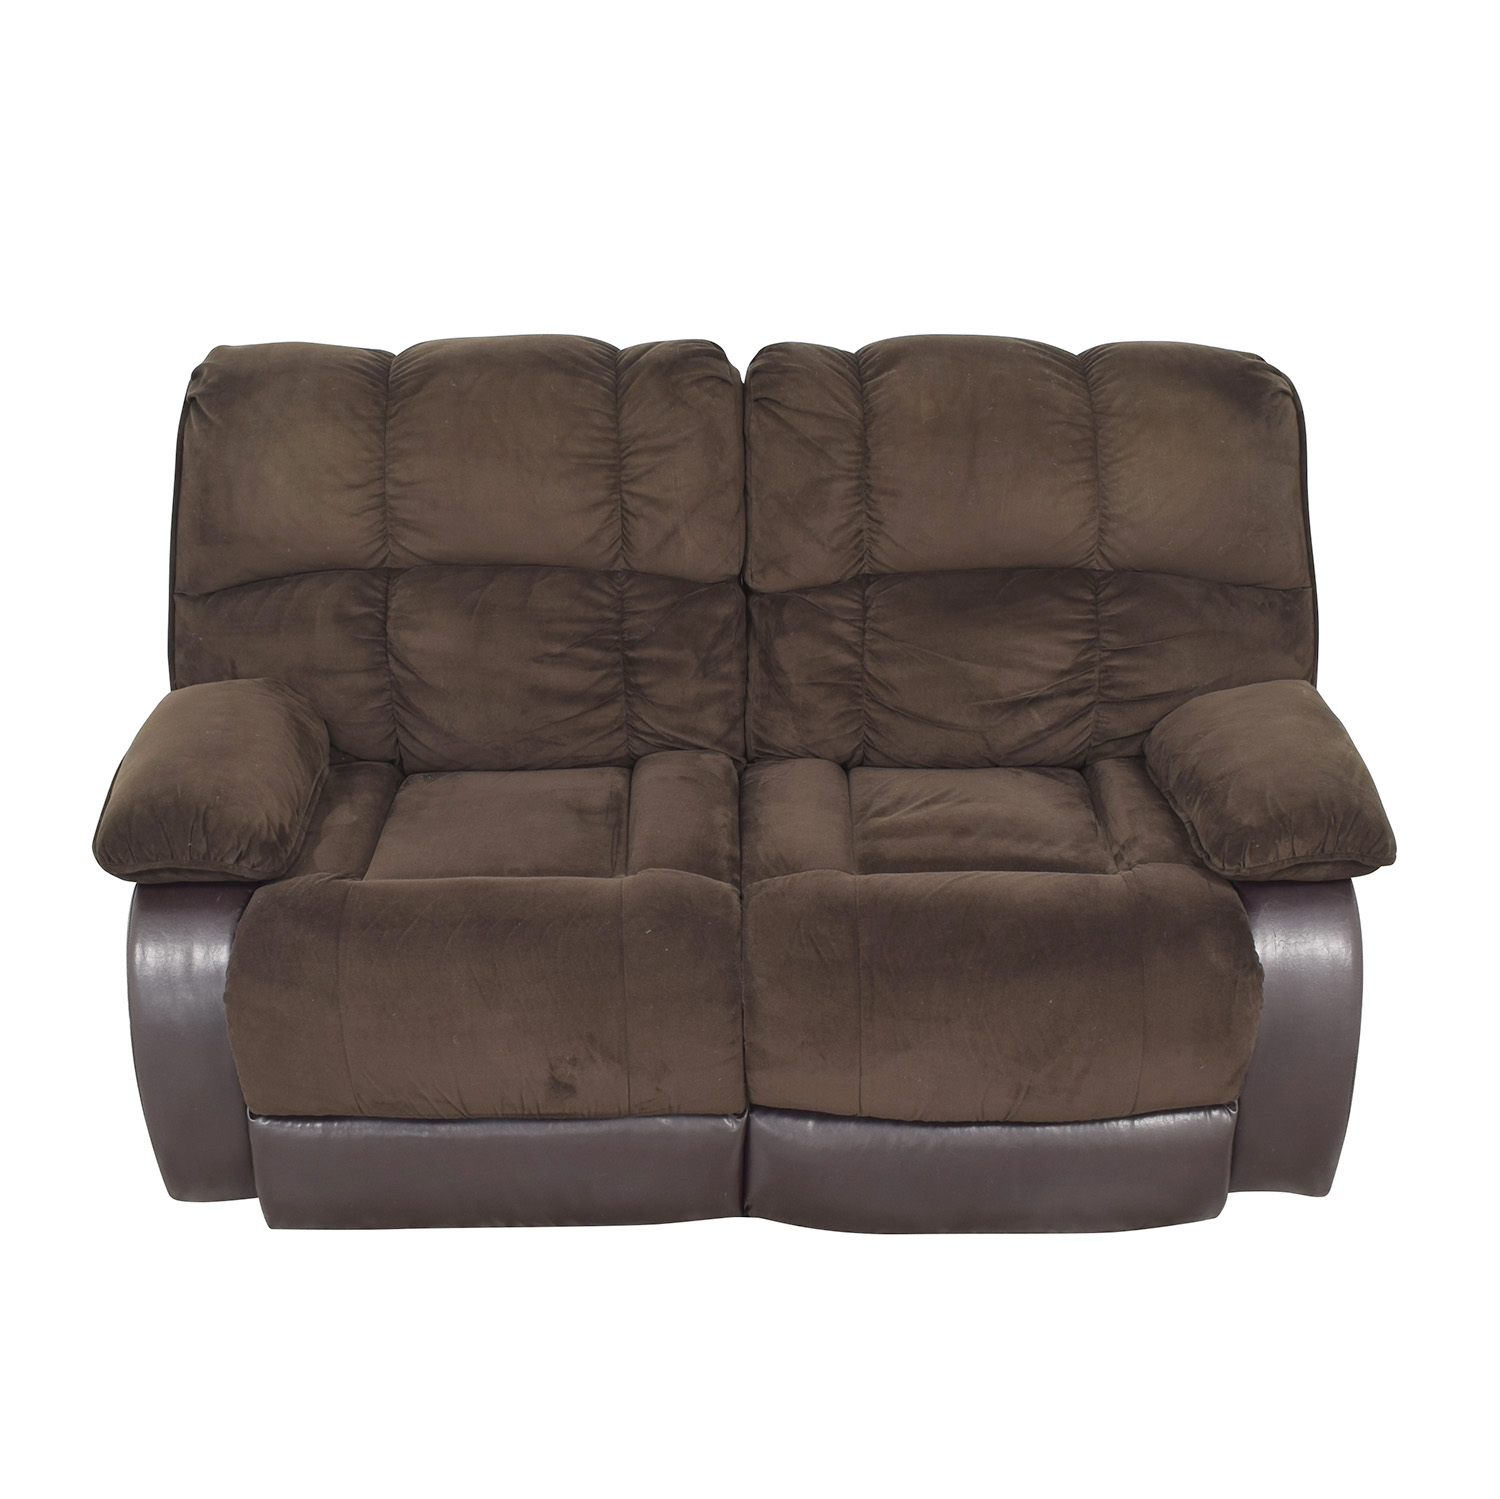 Raymour & Flanigan Raymour & Flanigan Reclining Loveseat dimensions